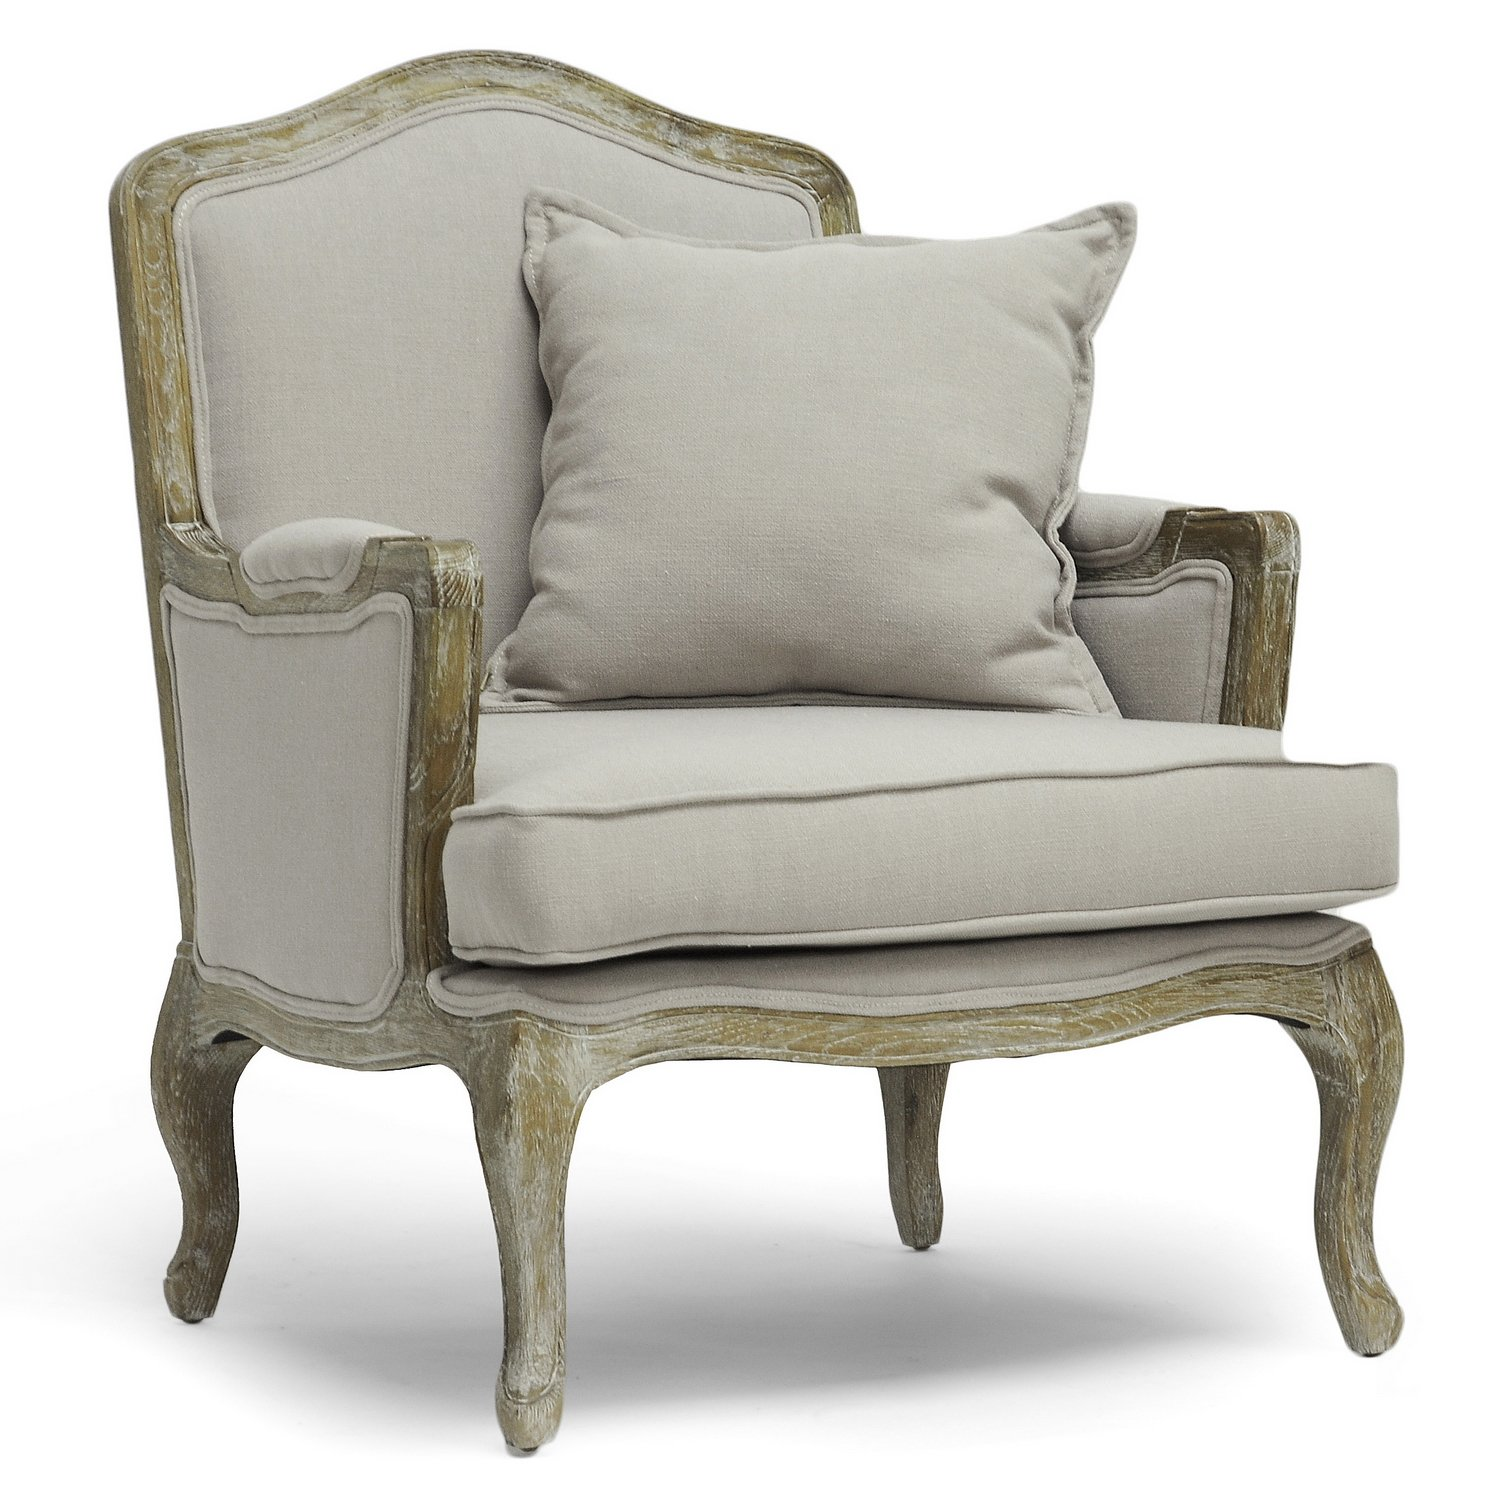 French country upholstered arm chair. French Country Furniture Finds. Because European country and French farmhouse style is easy to love. Rustic elegant charm is lovely indeed.